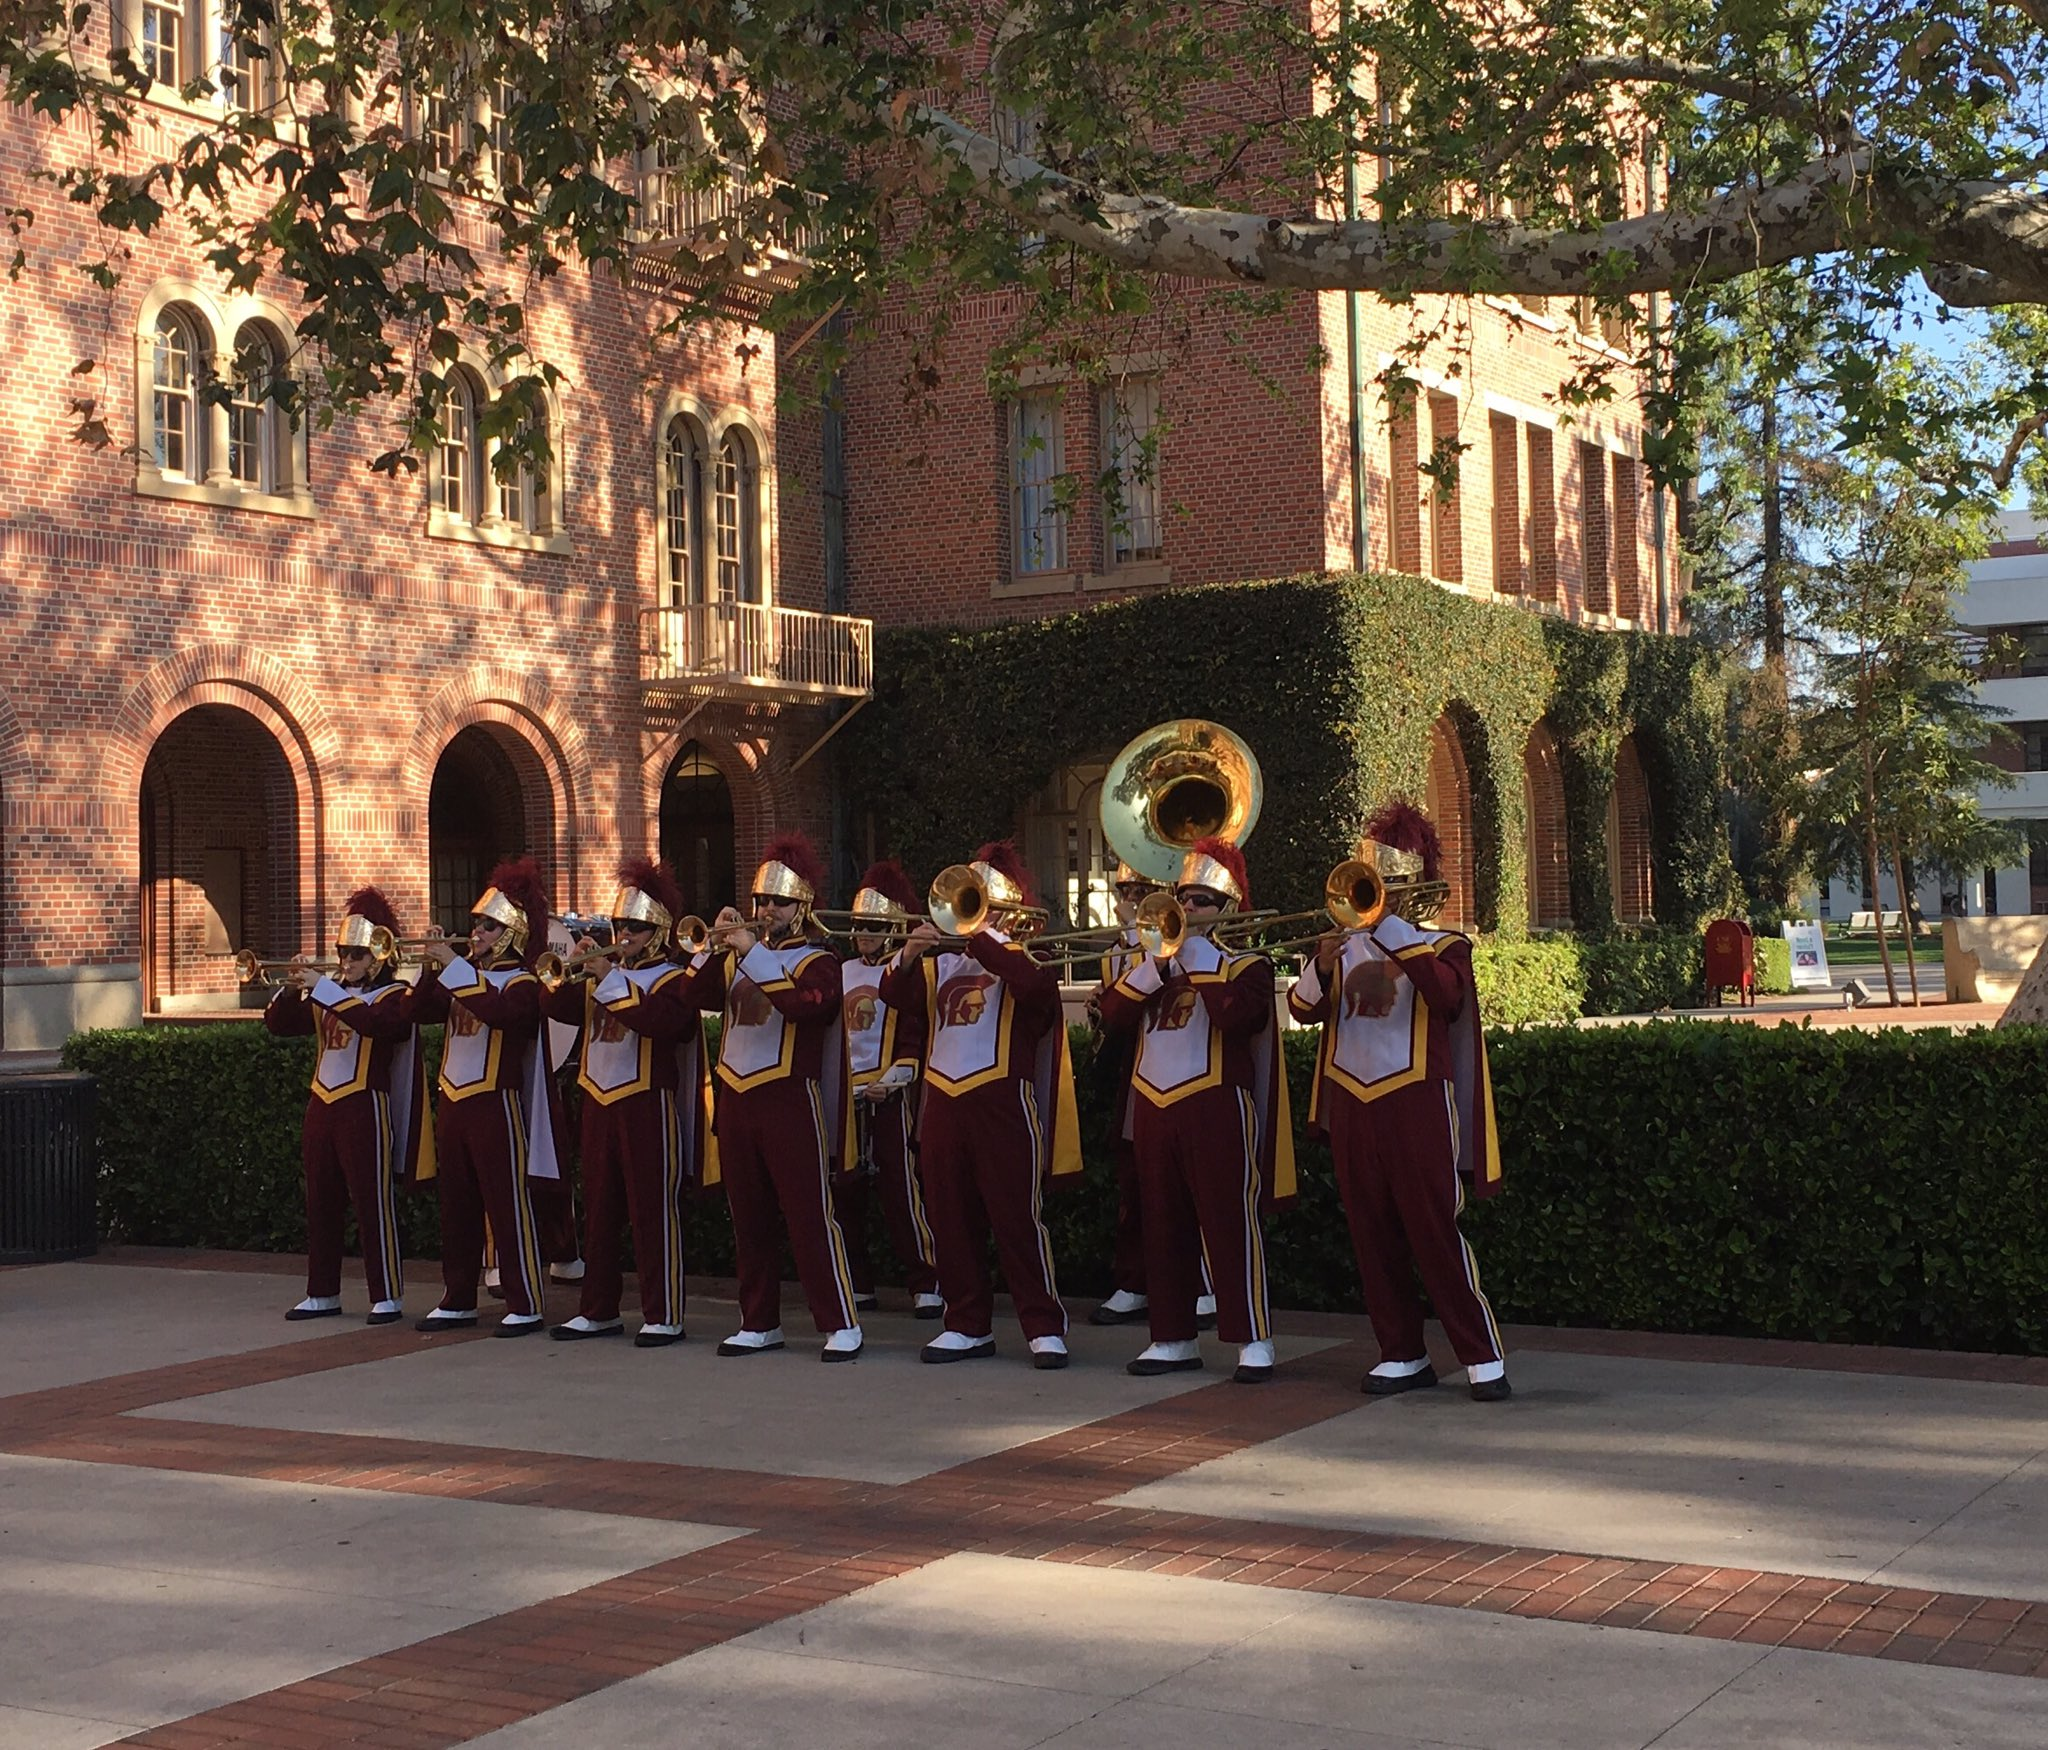 It's a beautiful day for the @USC Women's Conference #USCWC #FightOn https://t.co/BX8vIYLTcY